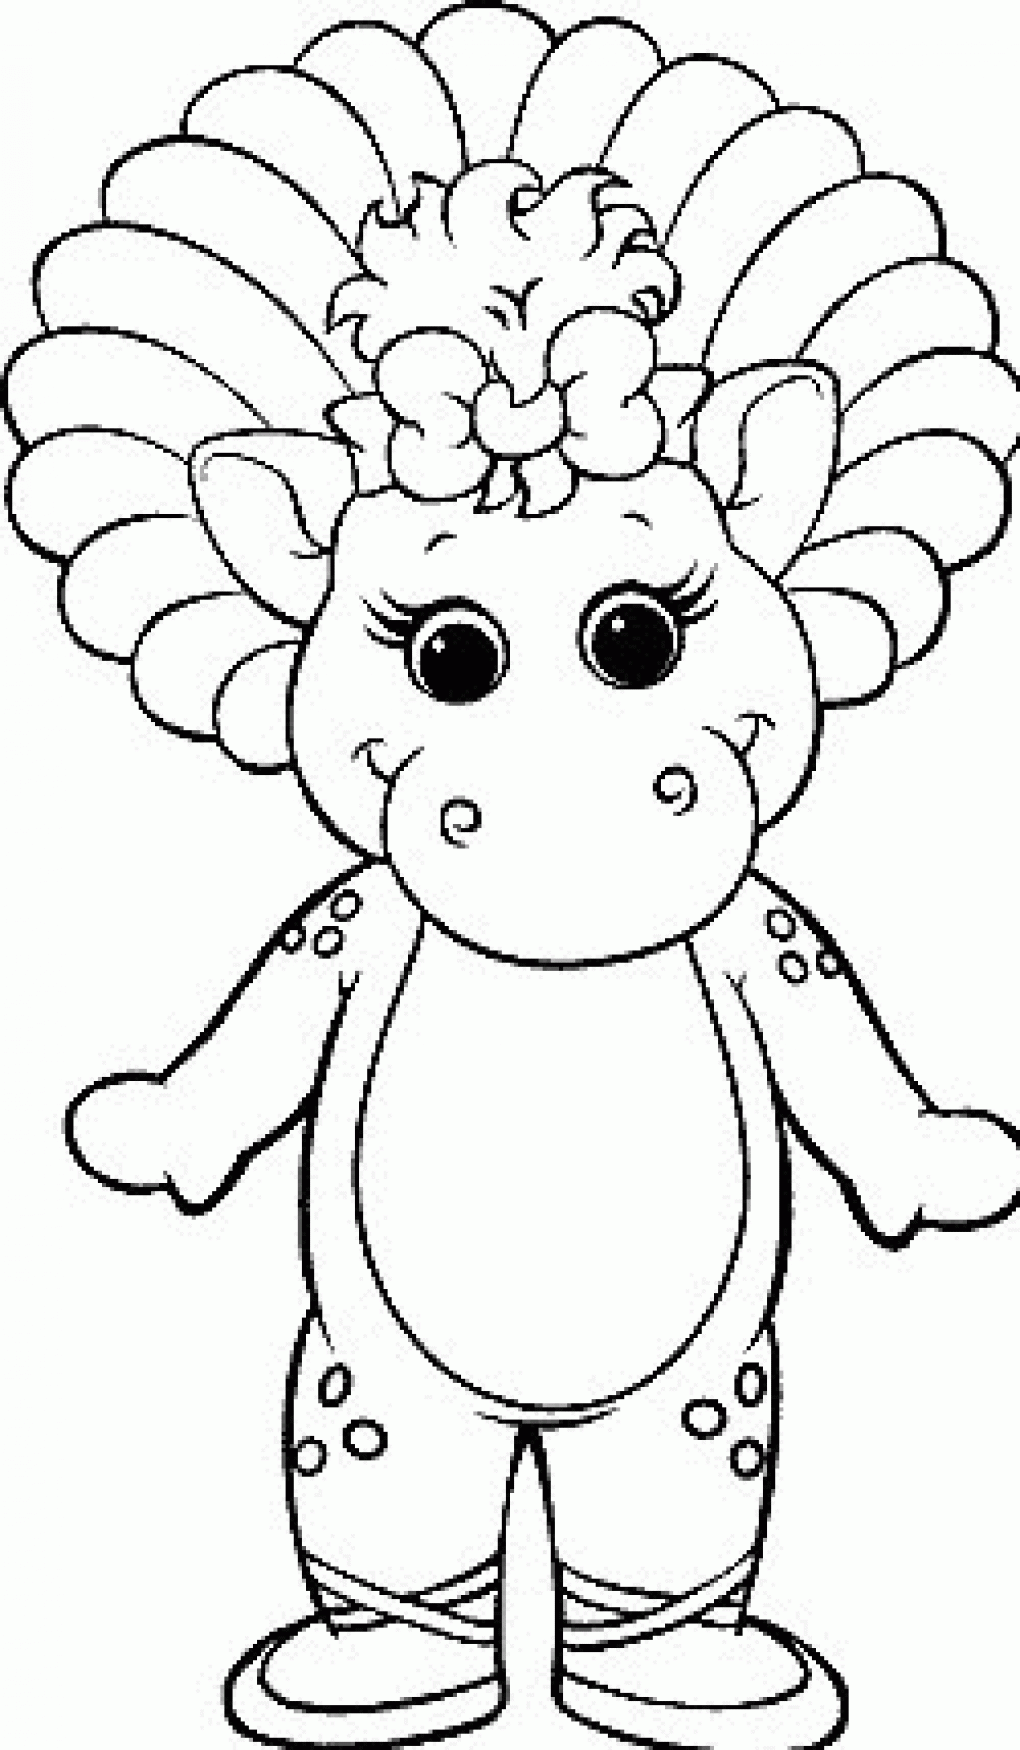 barney and friends 142 cartoons printable coloring pages